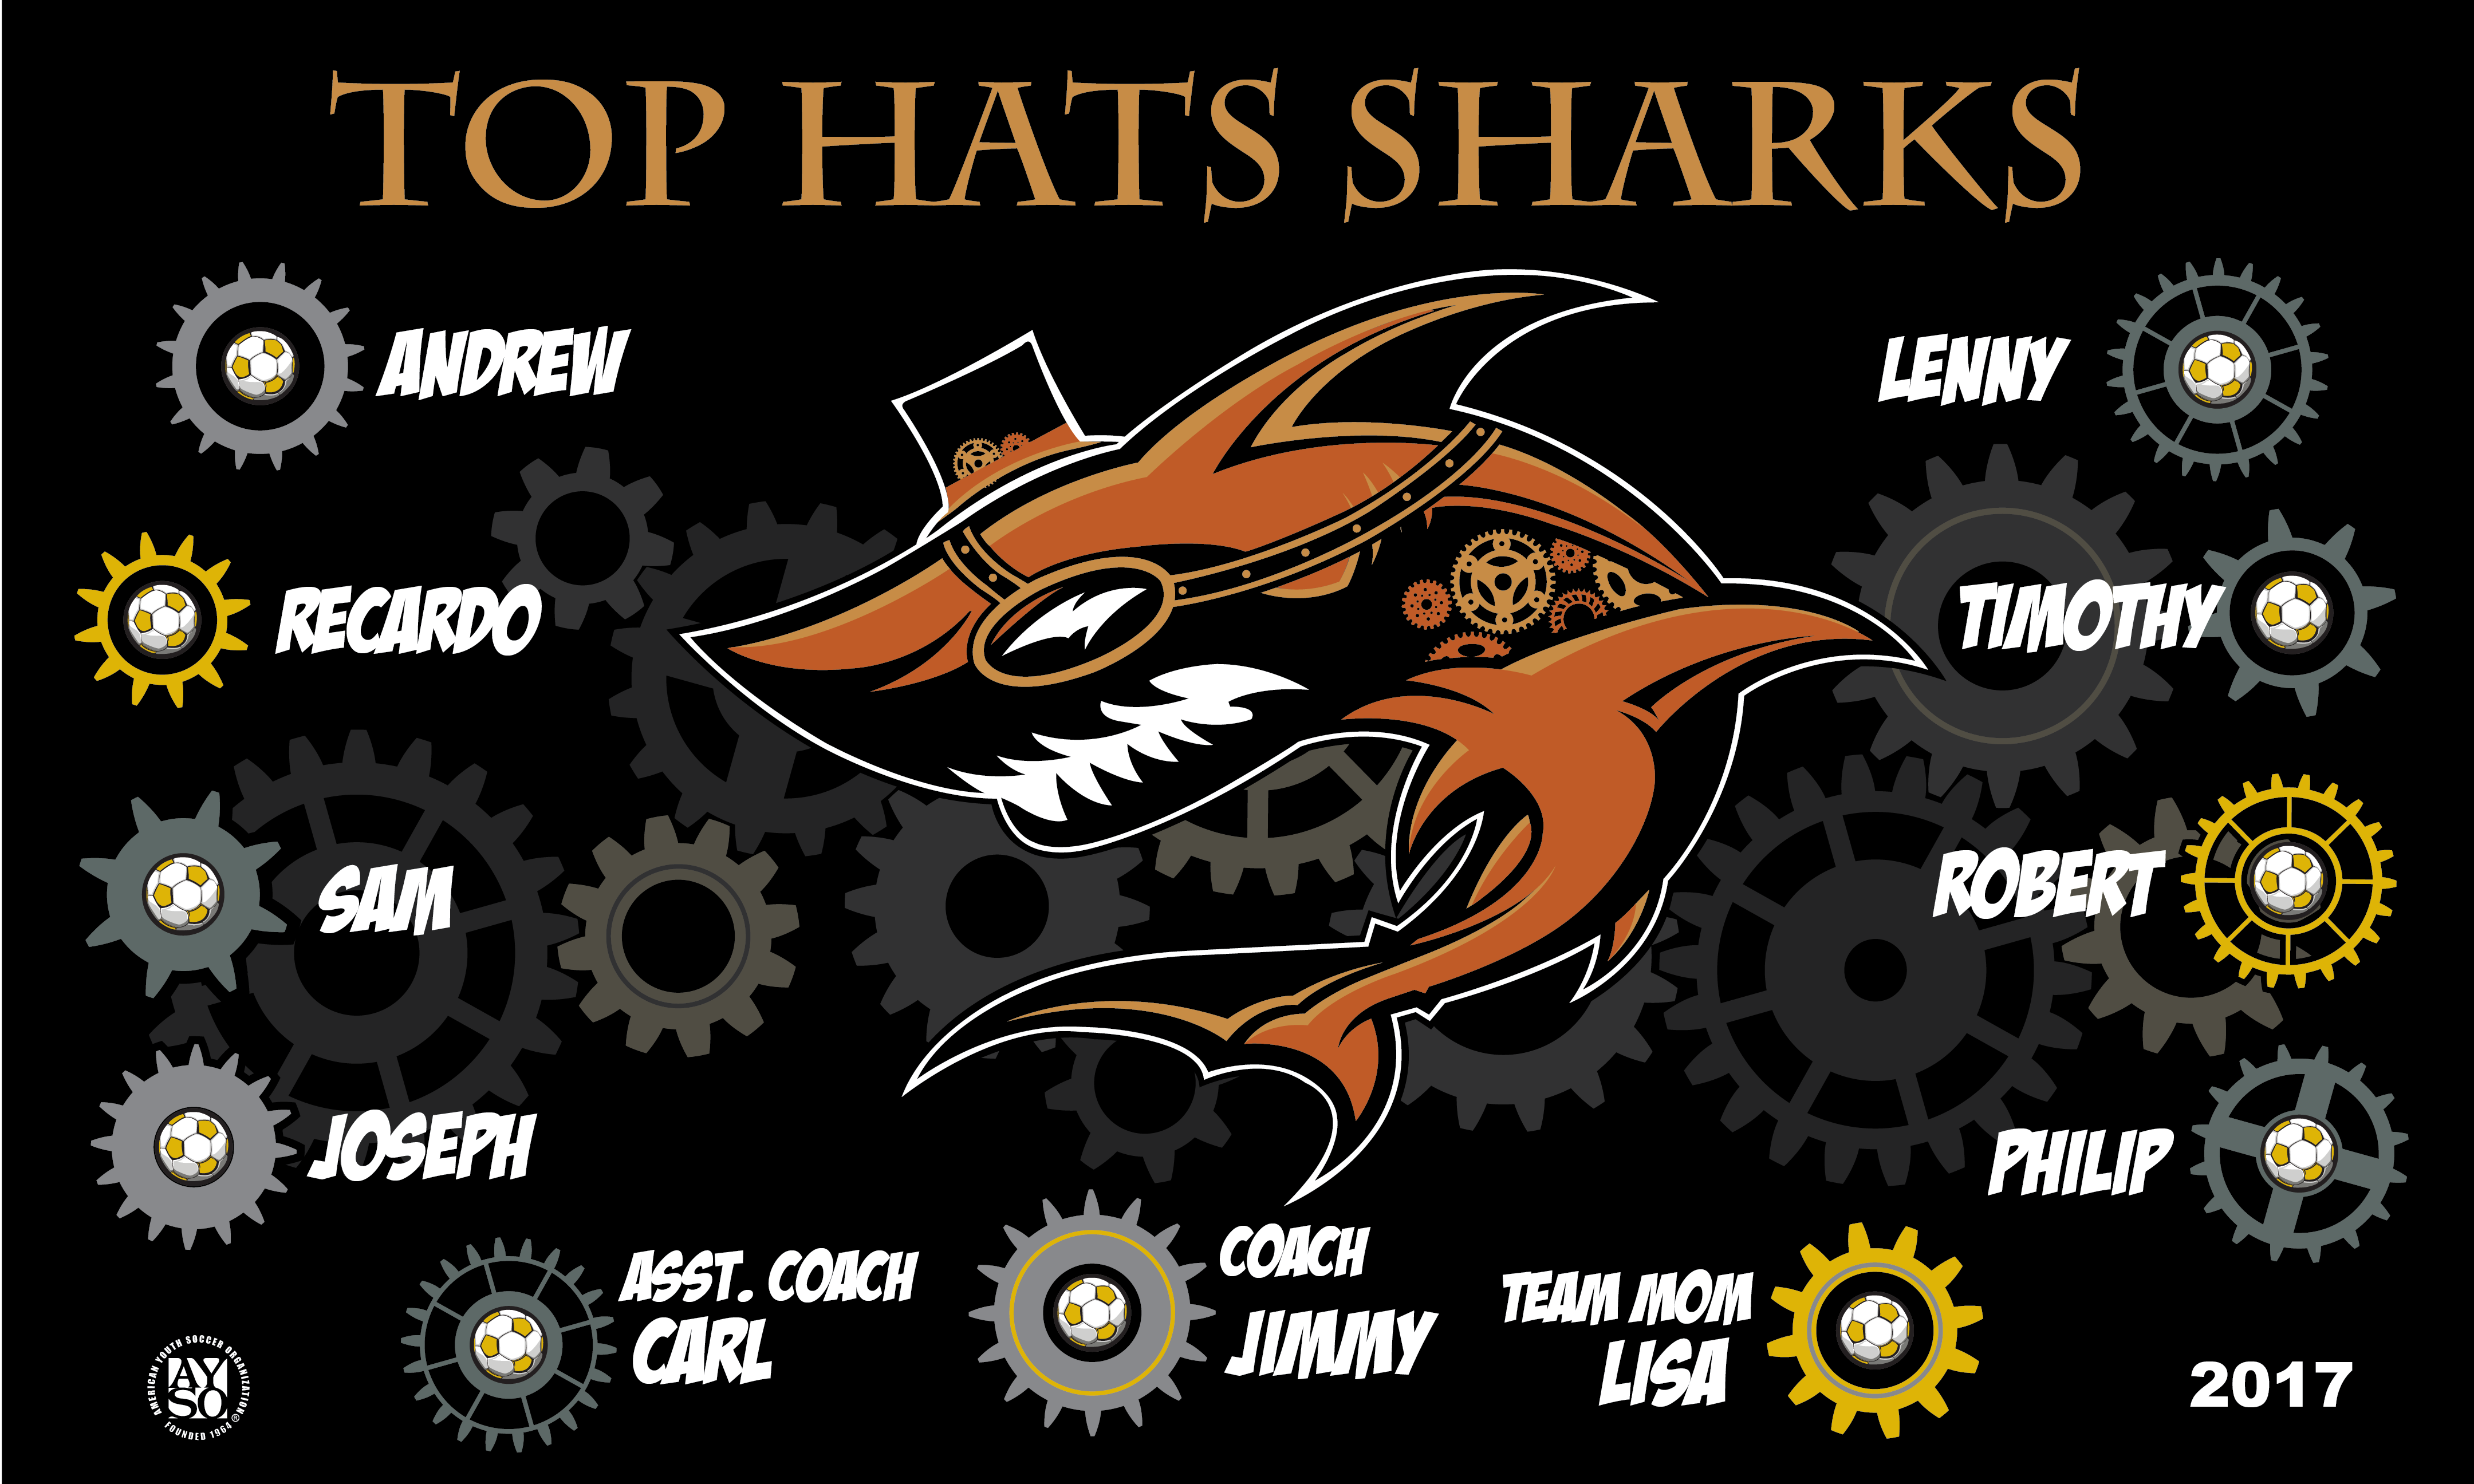 B1930 Top Hats Sharks 3x5 Banner